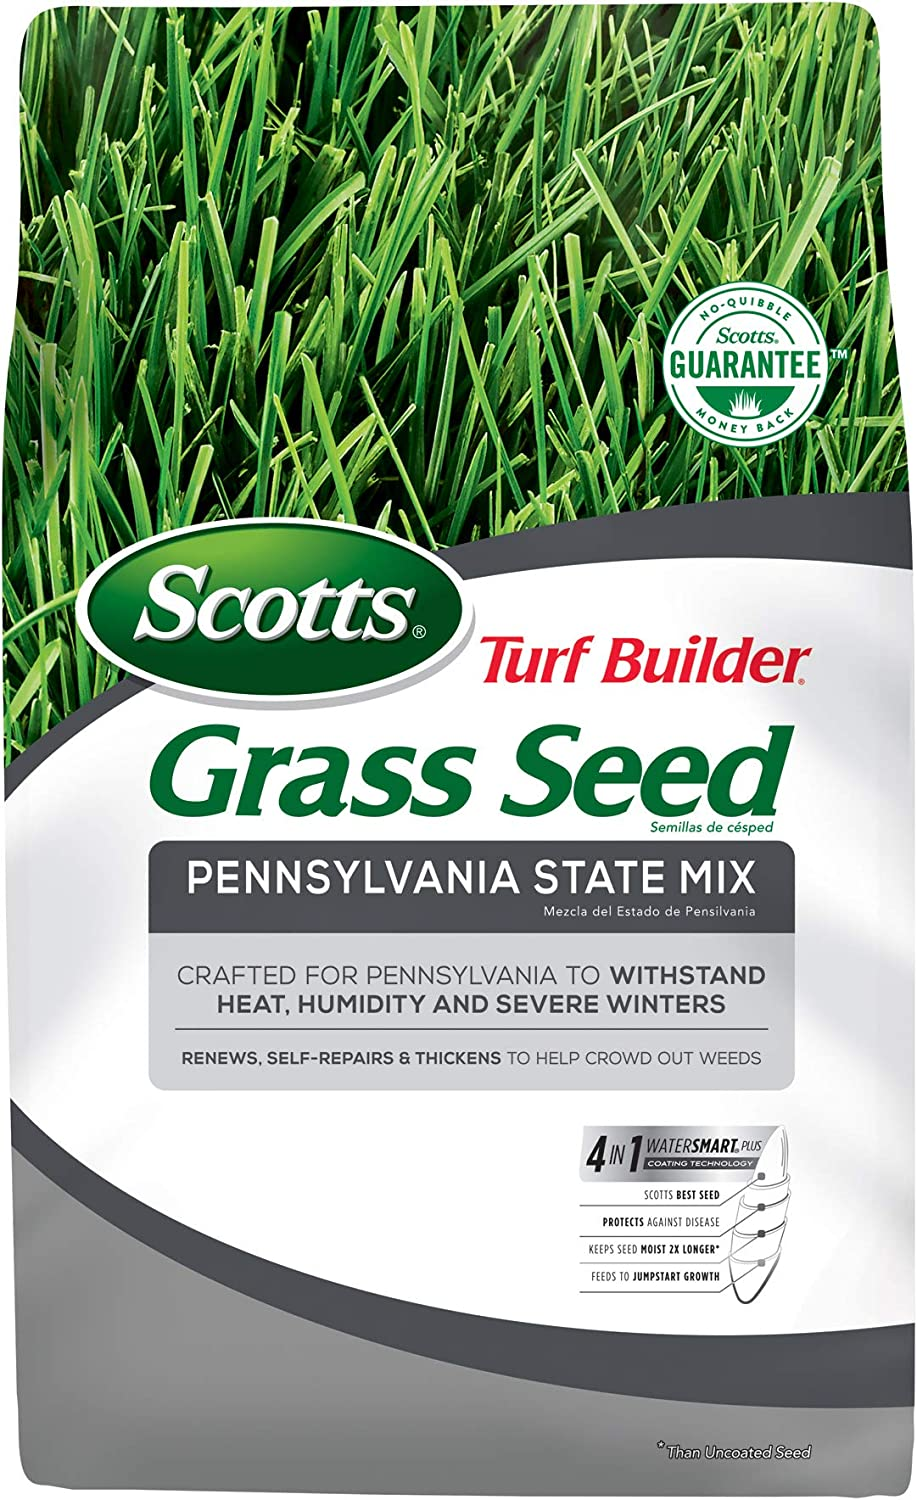 Scotts Turf Builder Grass Seed Pennsylvania - 3 55% OFF lbs. State Mix High quality new